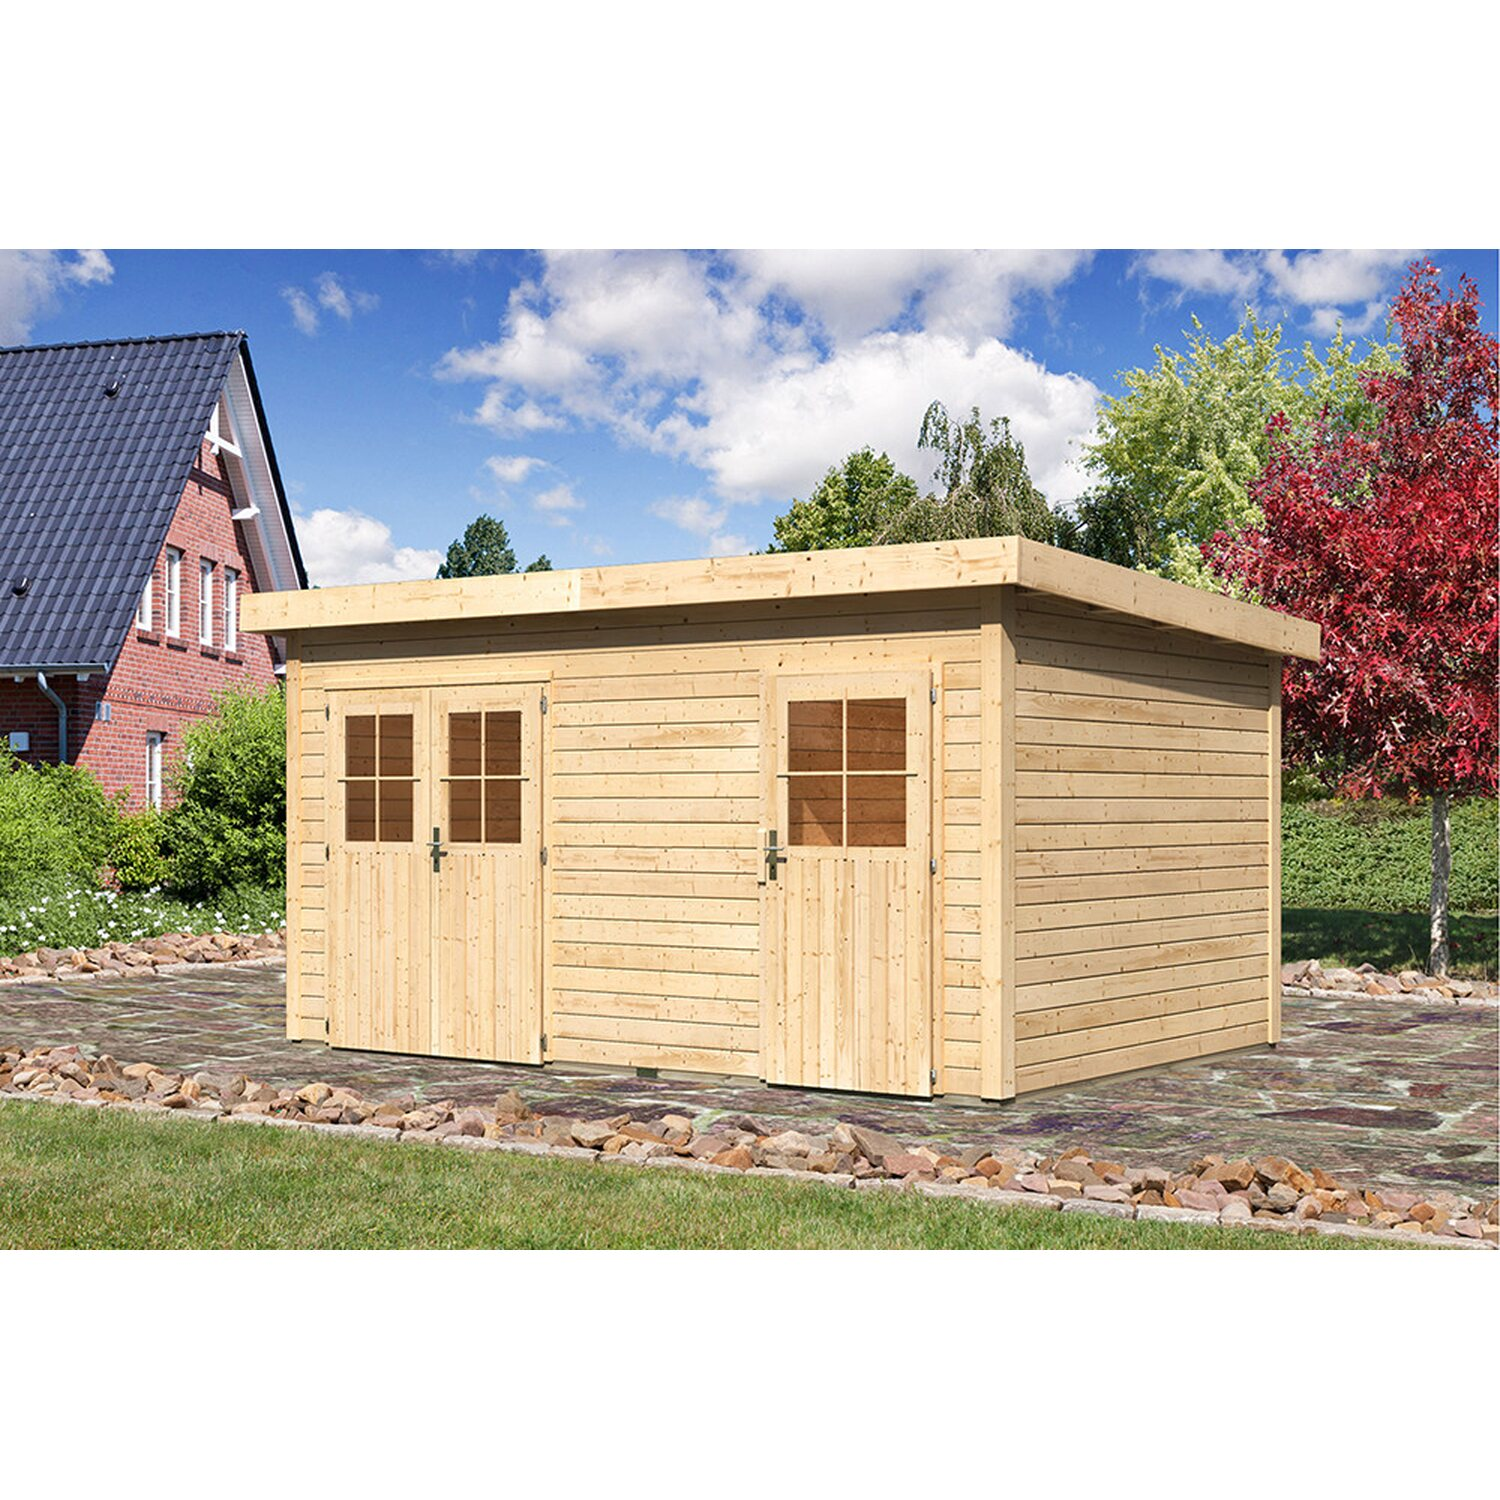 holz gartenhaus glostrup mit mittelwand natur b x t 420 cm x 270 cm kaufen bei obi. Black Bedroom Furniture Sets. Home Design Ideas